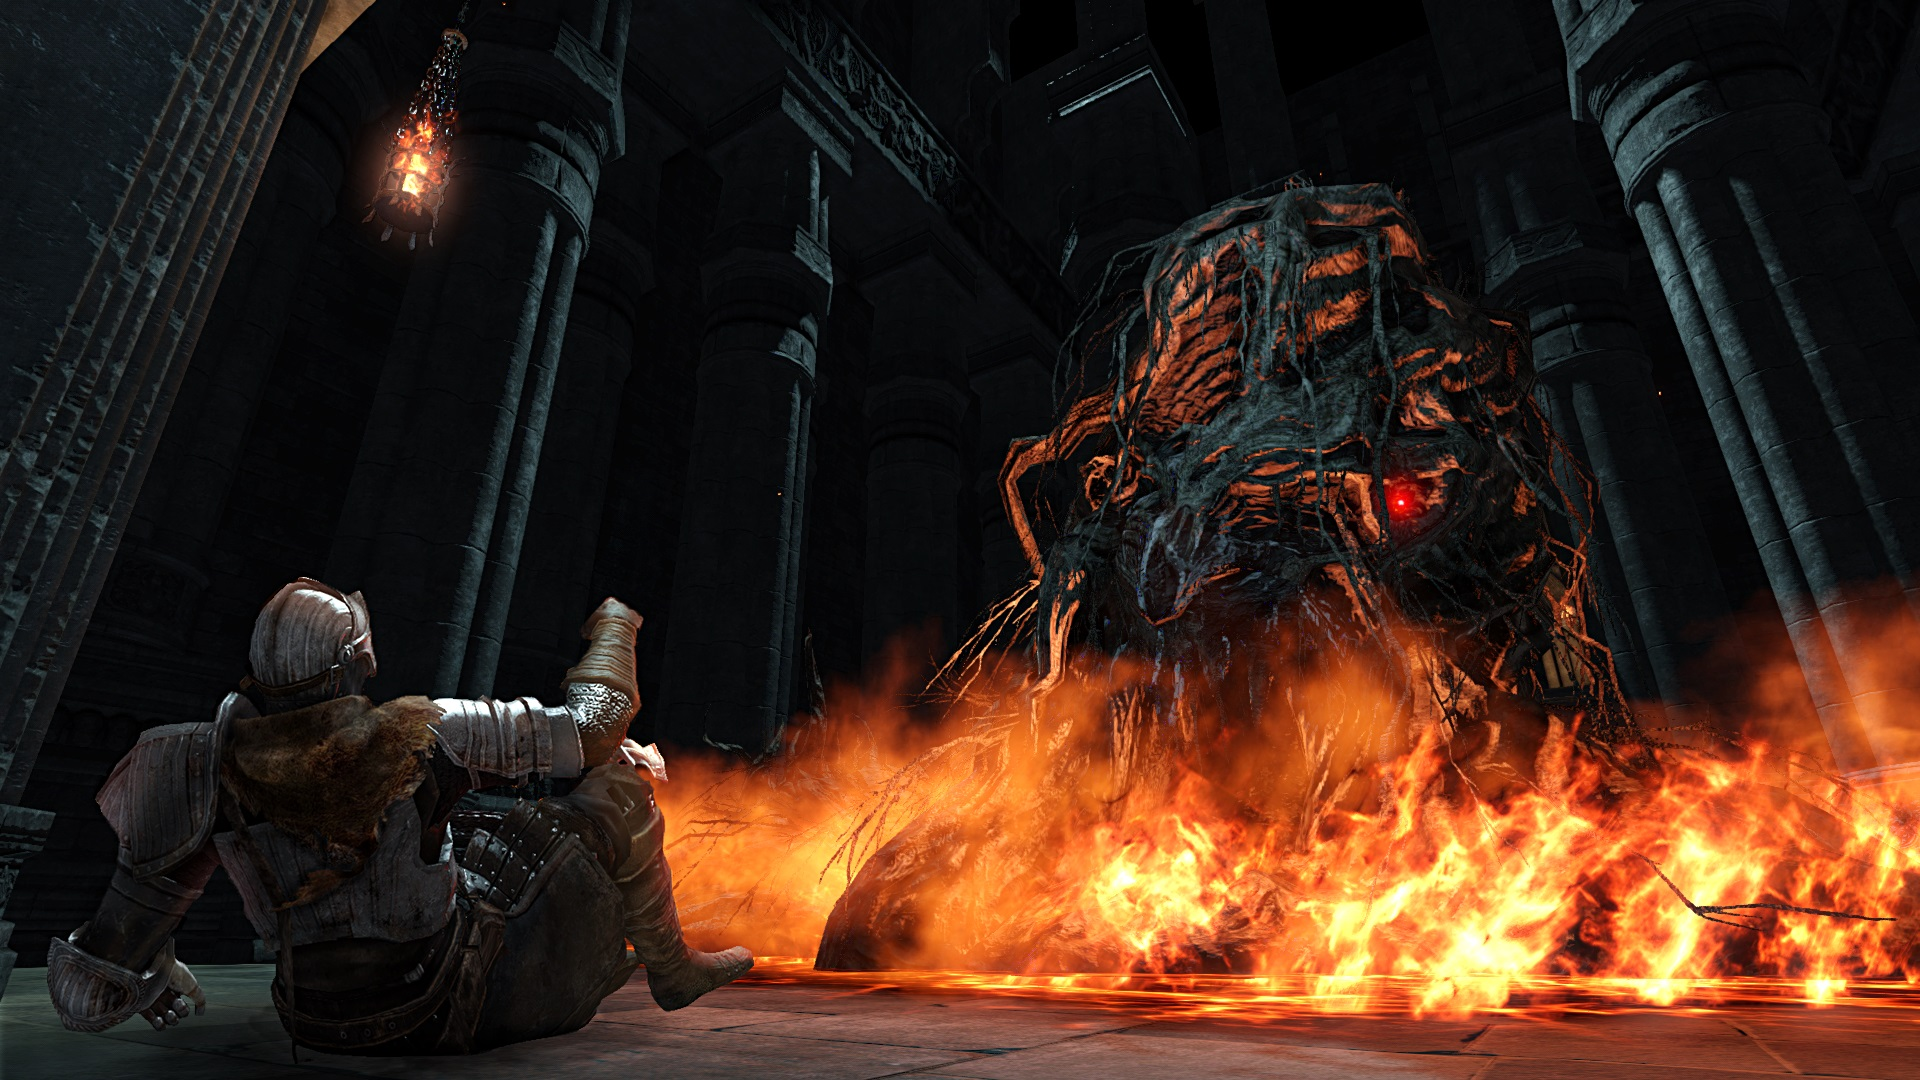 Dark Souls II: Scholar of the First Sin: Worth Upgrading? | Tom's Guide